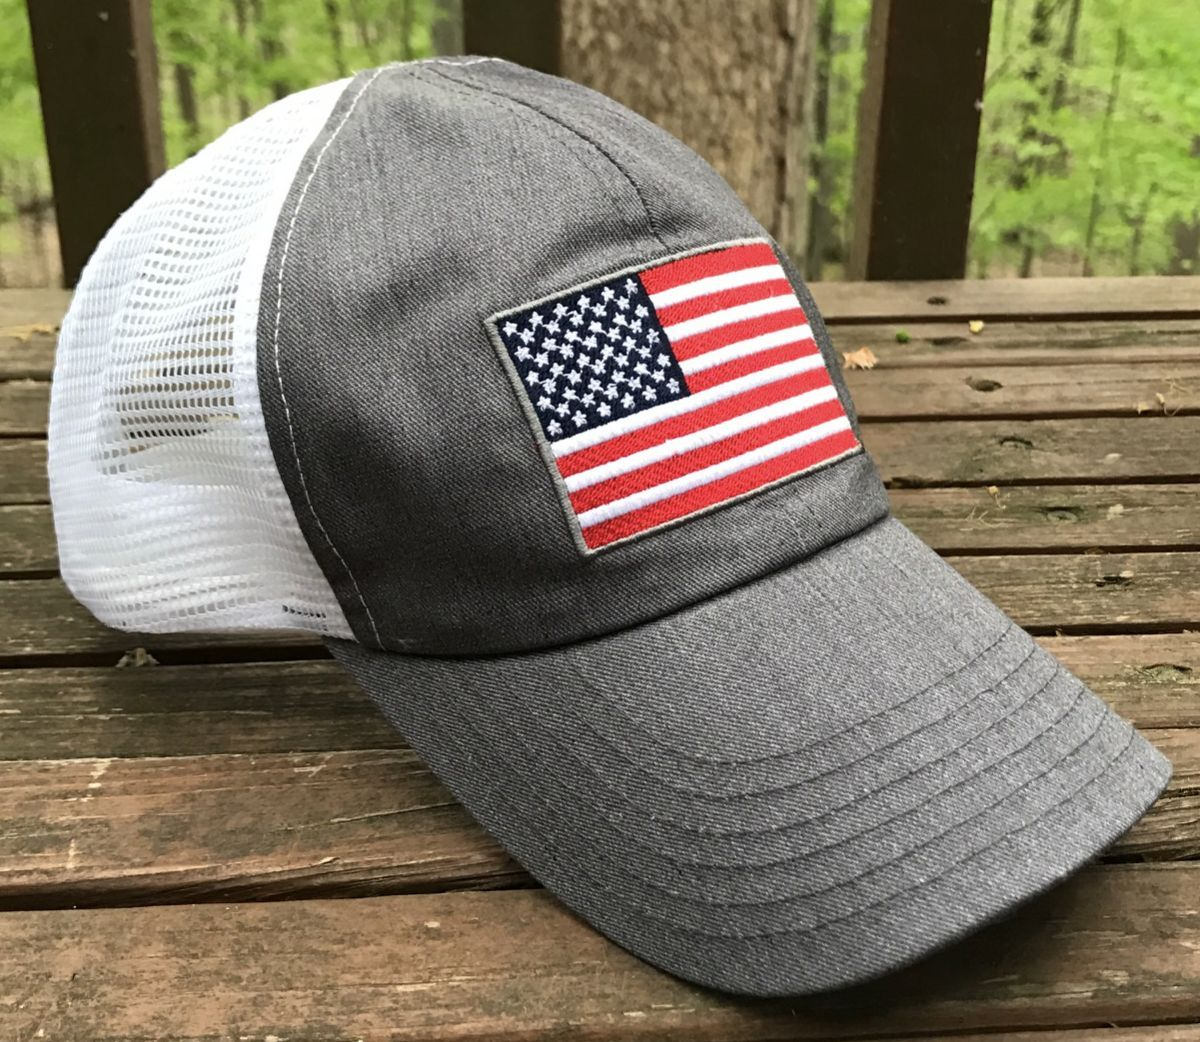 9d9f5f538226 Trucker hat with snapback made USA Soon to be you favorite patriotic  baseball cap. Red White Blue American Flag ...